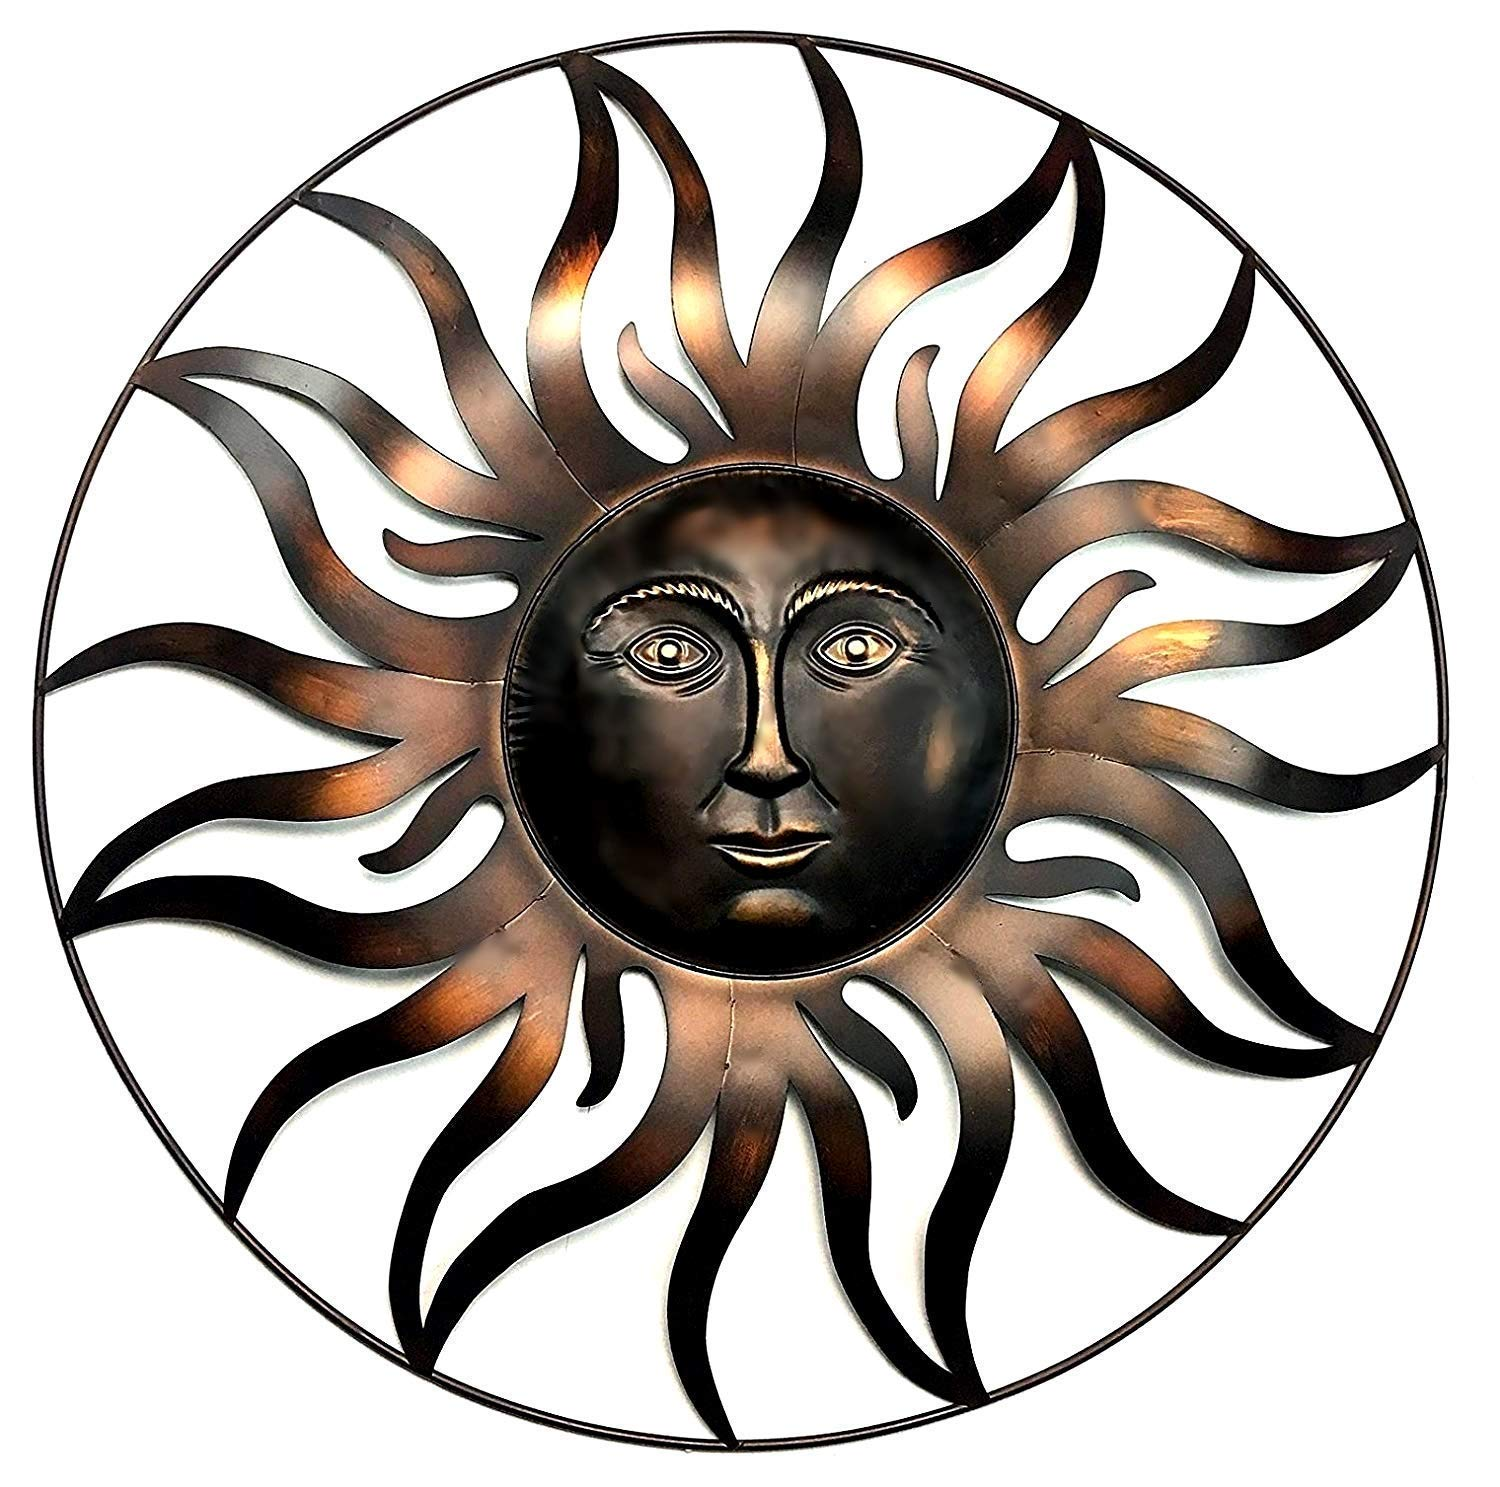 Bellaa 20018 Sun Metal Wall Decor Patio Garden, Indoor, Outdoor Celetic